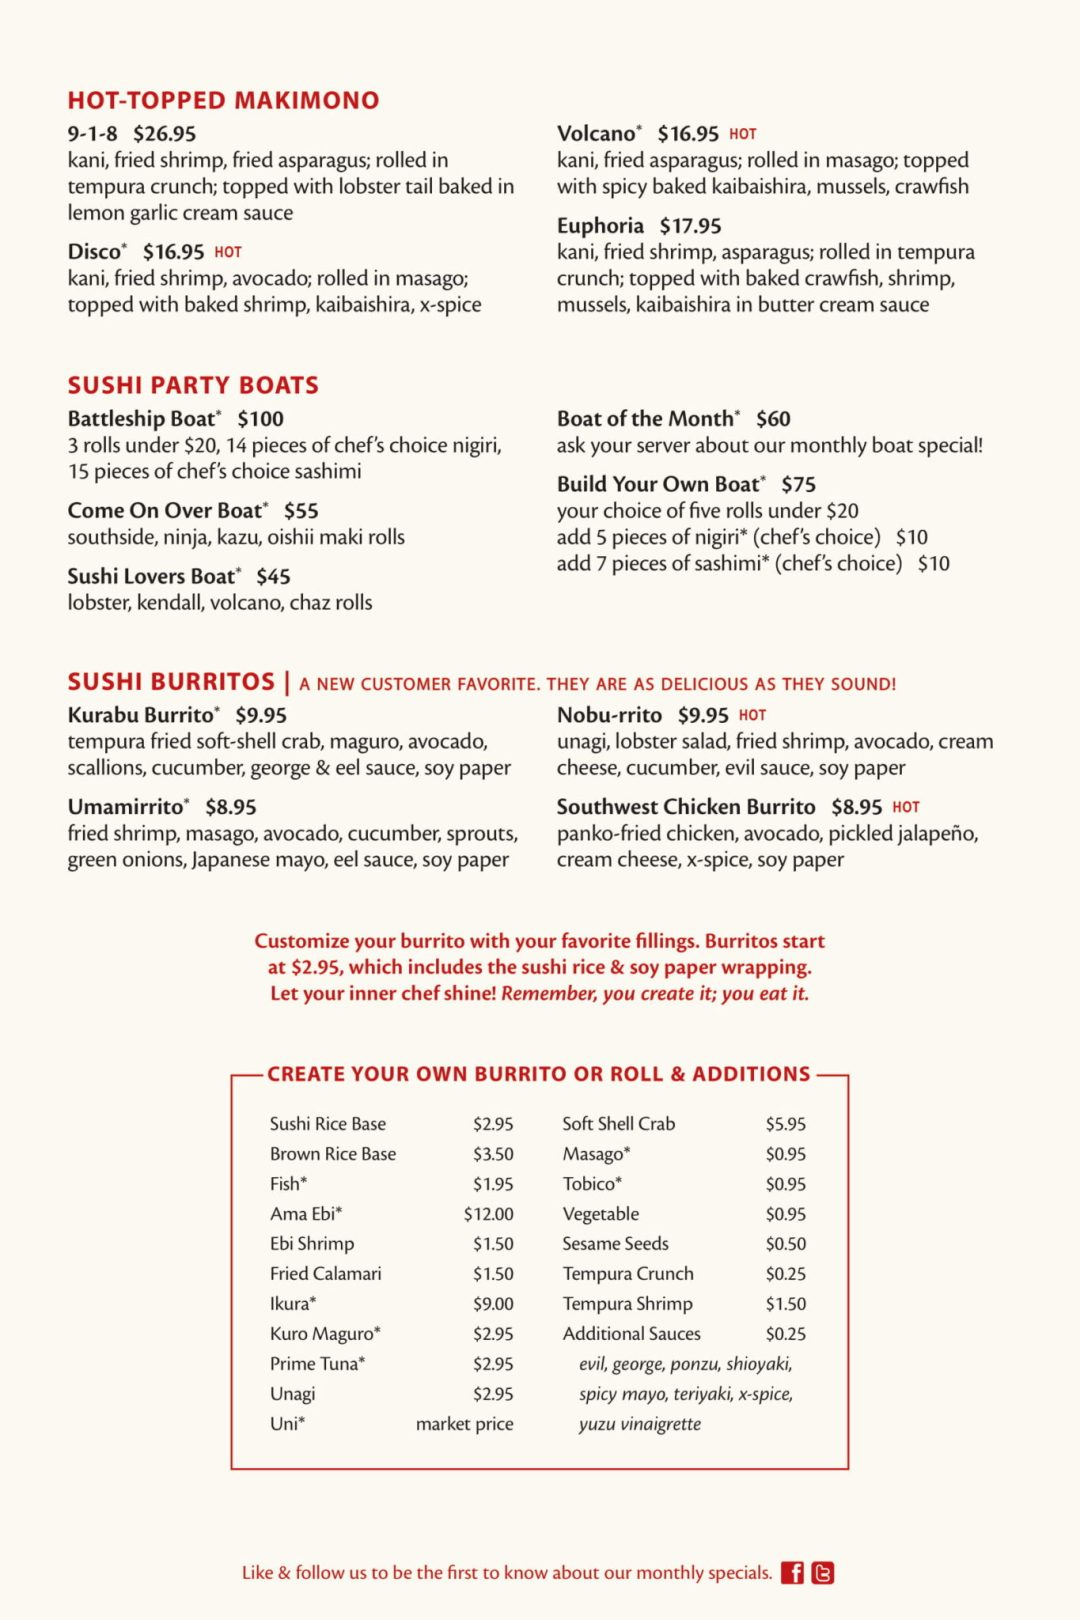 Fuji Sushi Bar Full Menu - Page 5